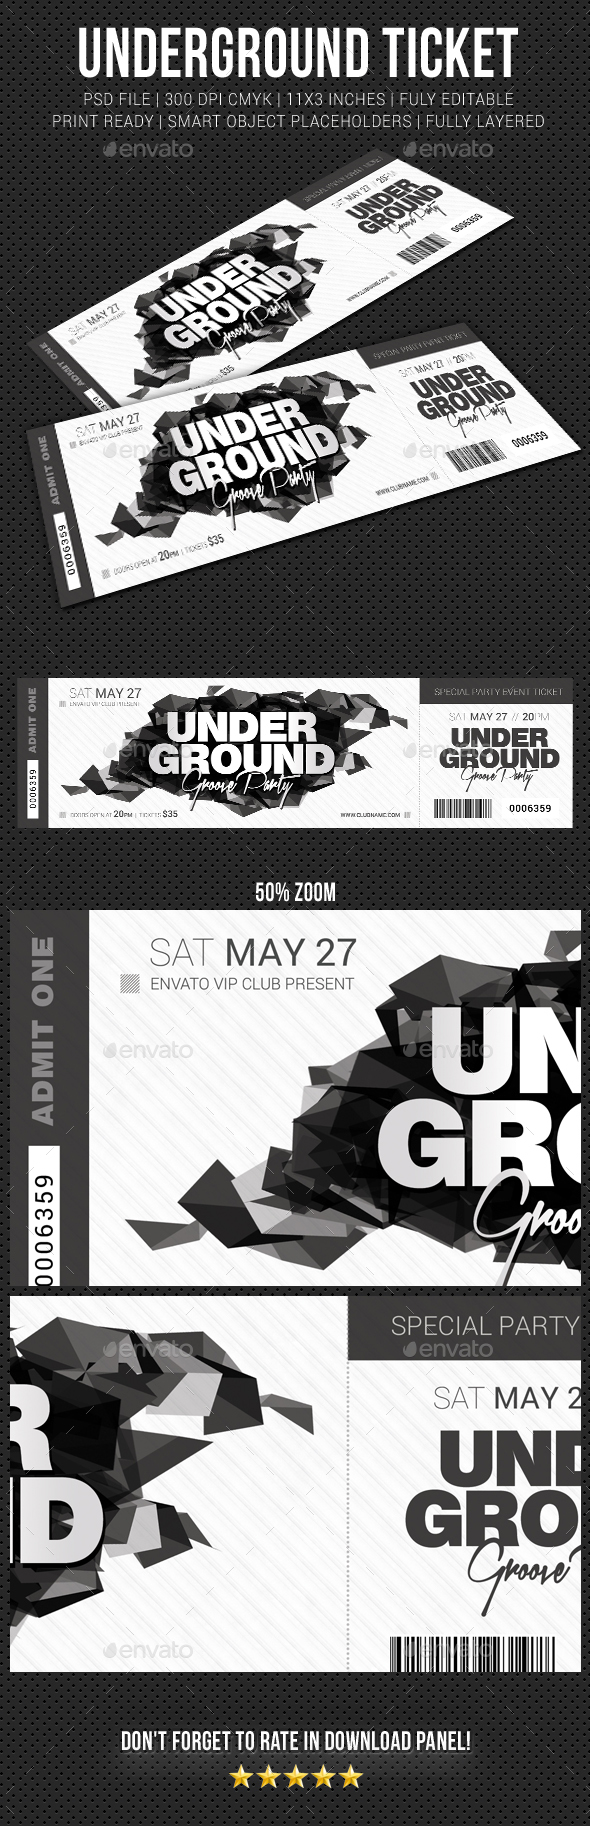 Underground Groove Party Event Ticket - Cards & Invites Print Templates